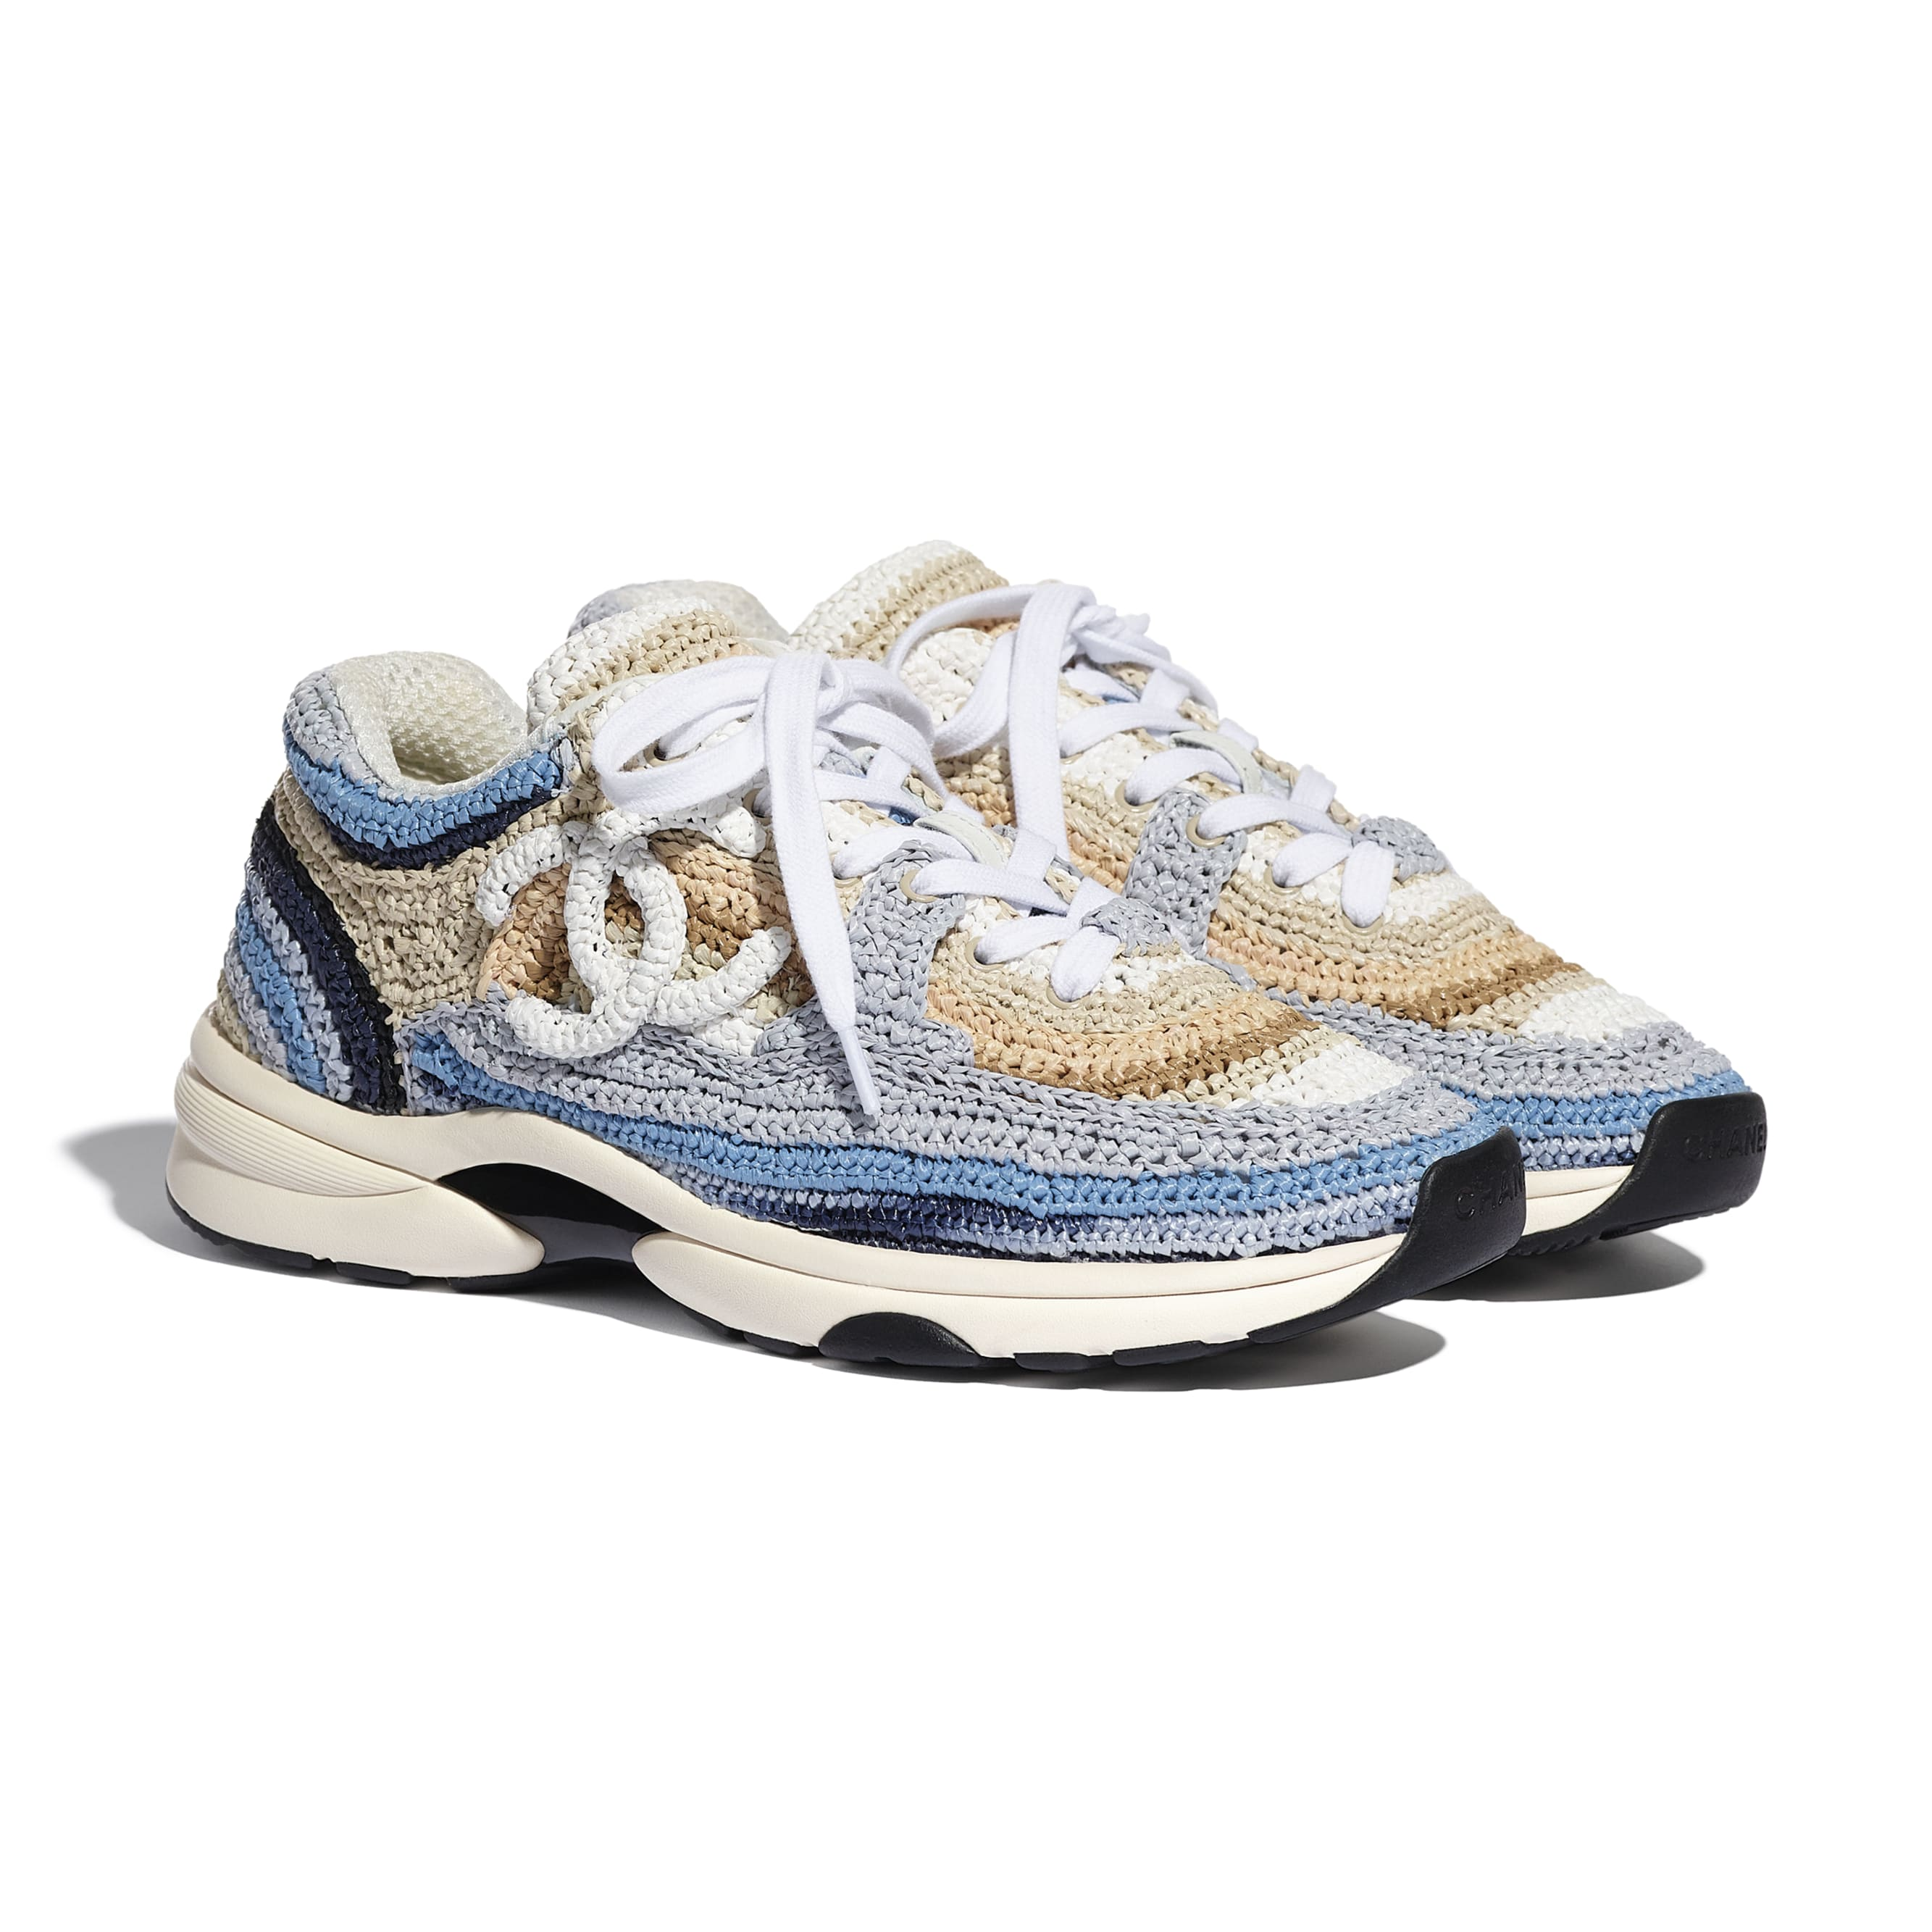 Trainers - Blue & Beige - Braided Raffia - CHANEL - Alternative view - see standard sized version